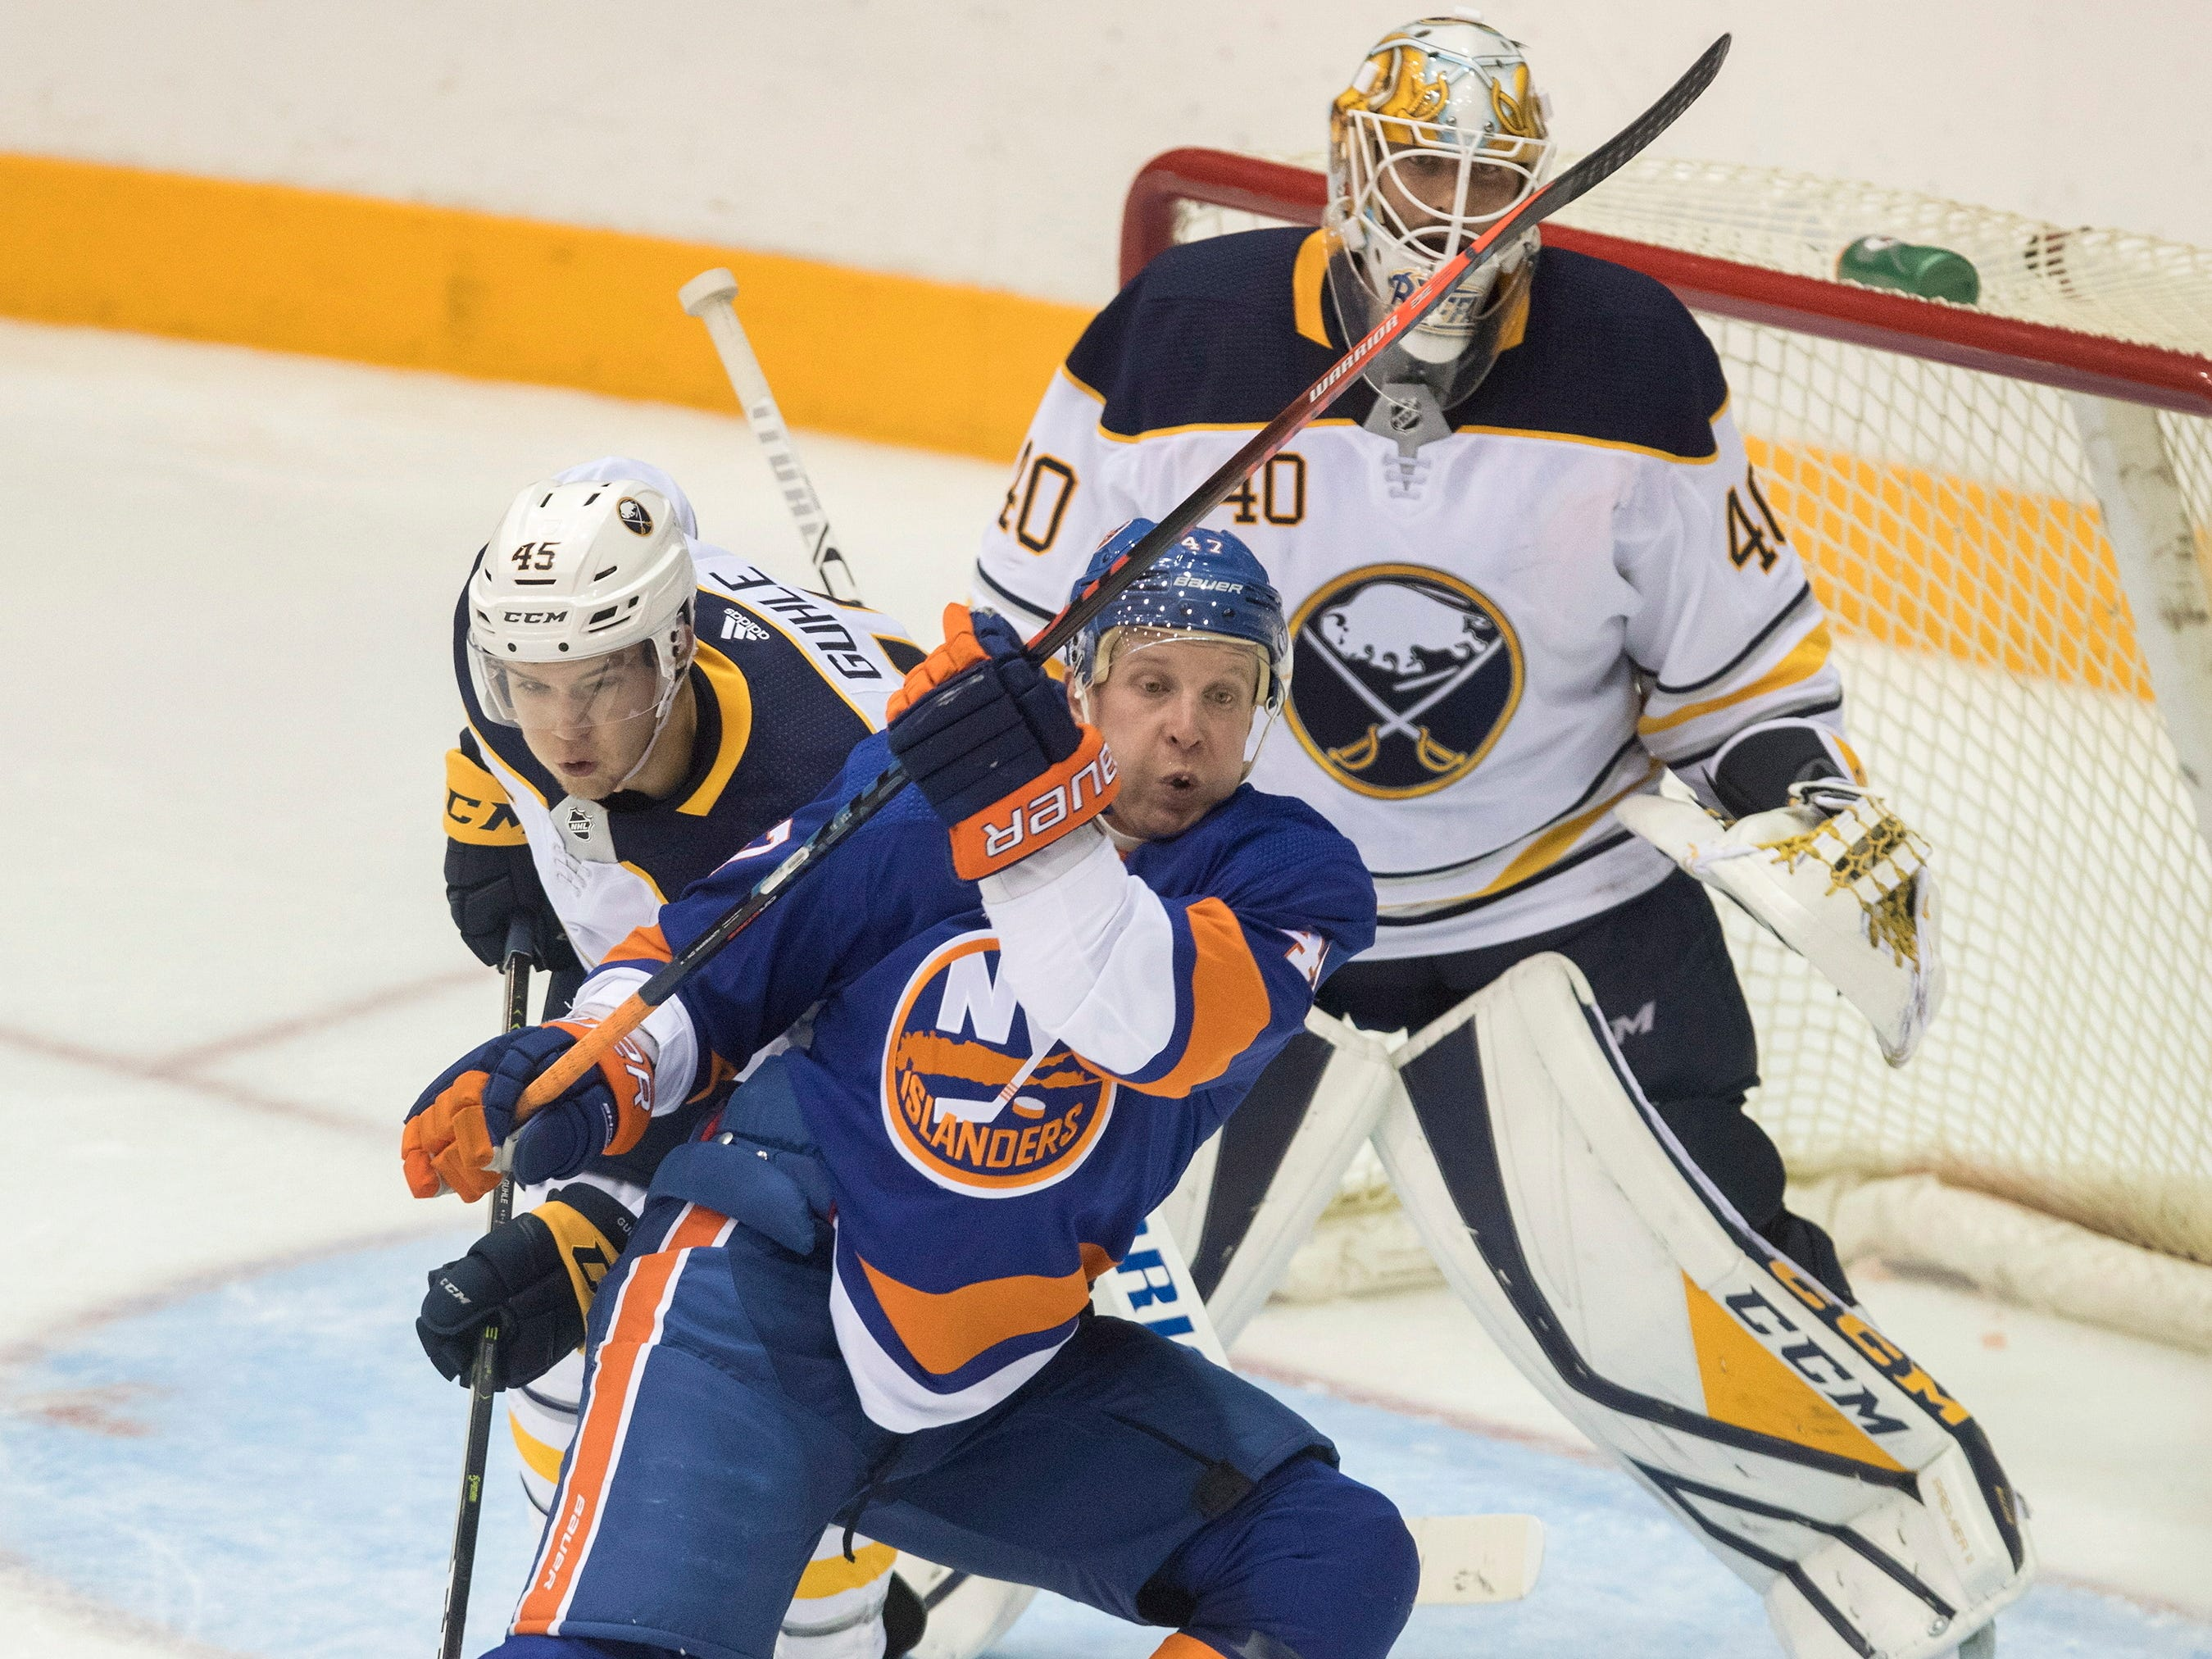 Sept. 28: New York Islanders' Leo Komarov, front, battles Buffalo Sabres' Guhle Brendan in the dying seconds of the third period